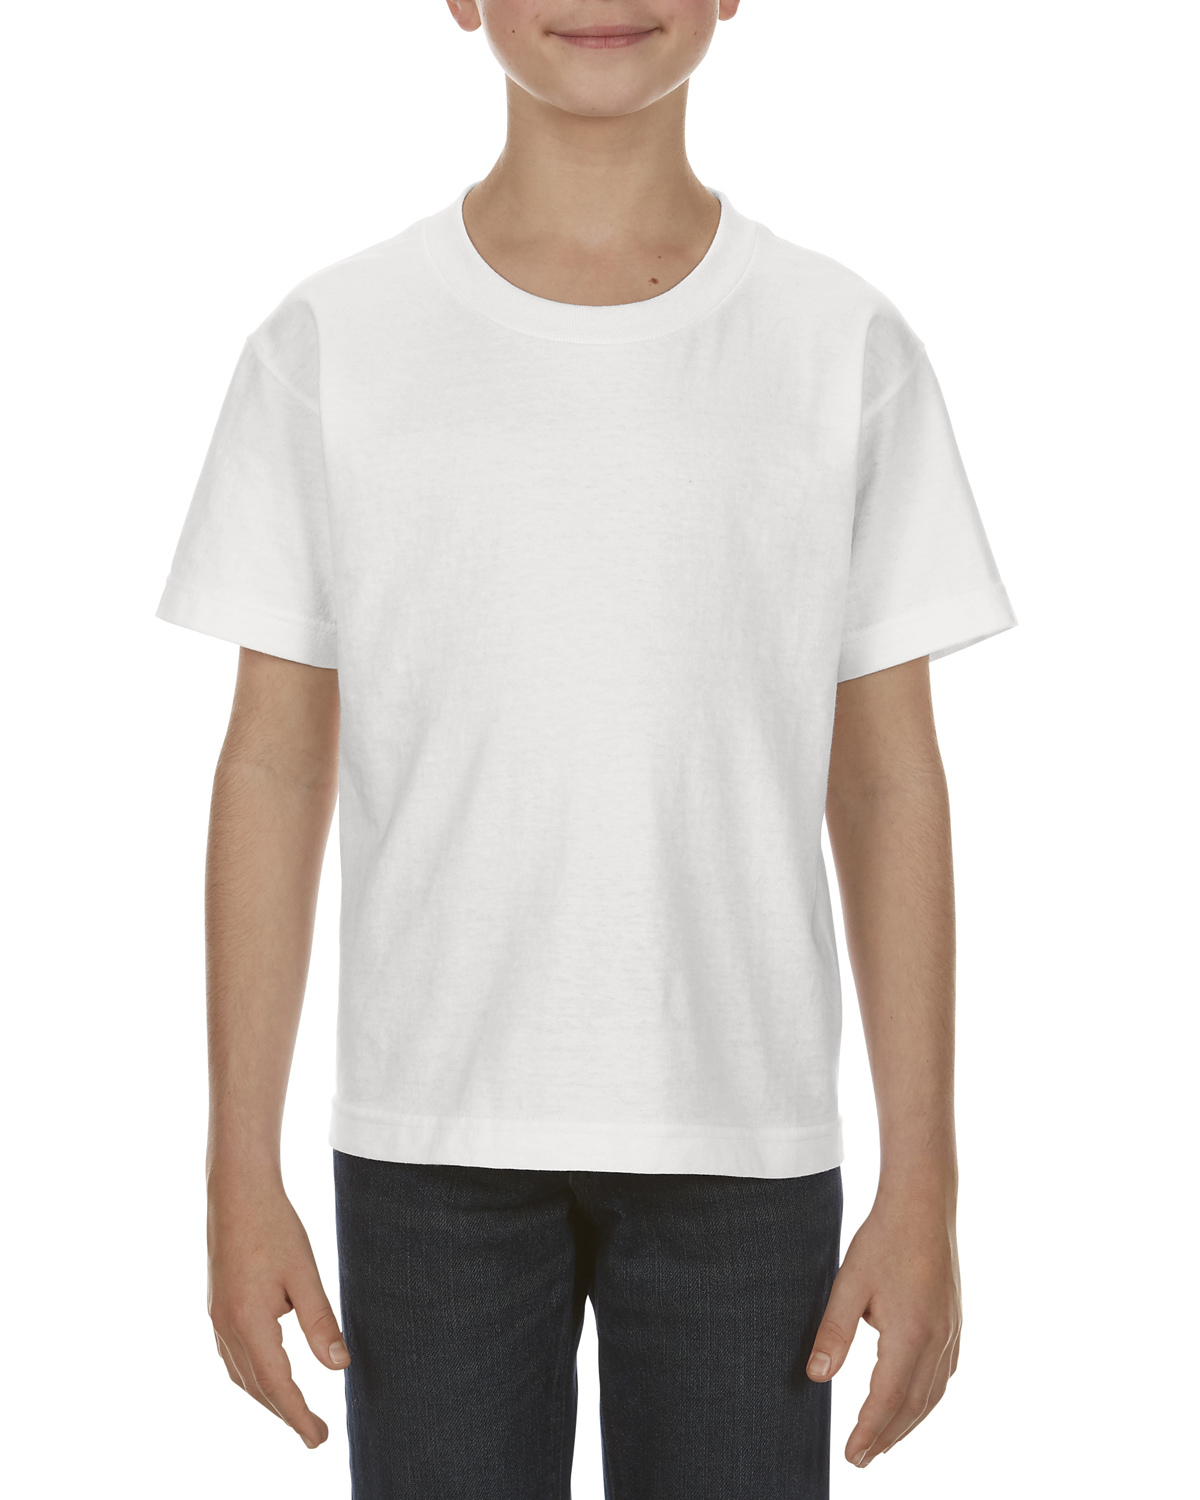 Youth 6.0 oz., 100% Cotton T-Shirt